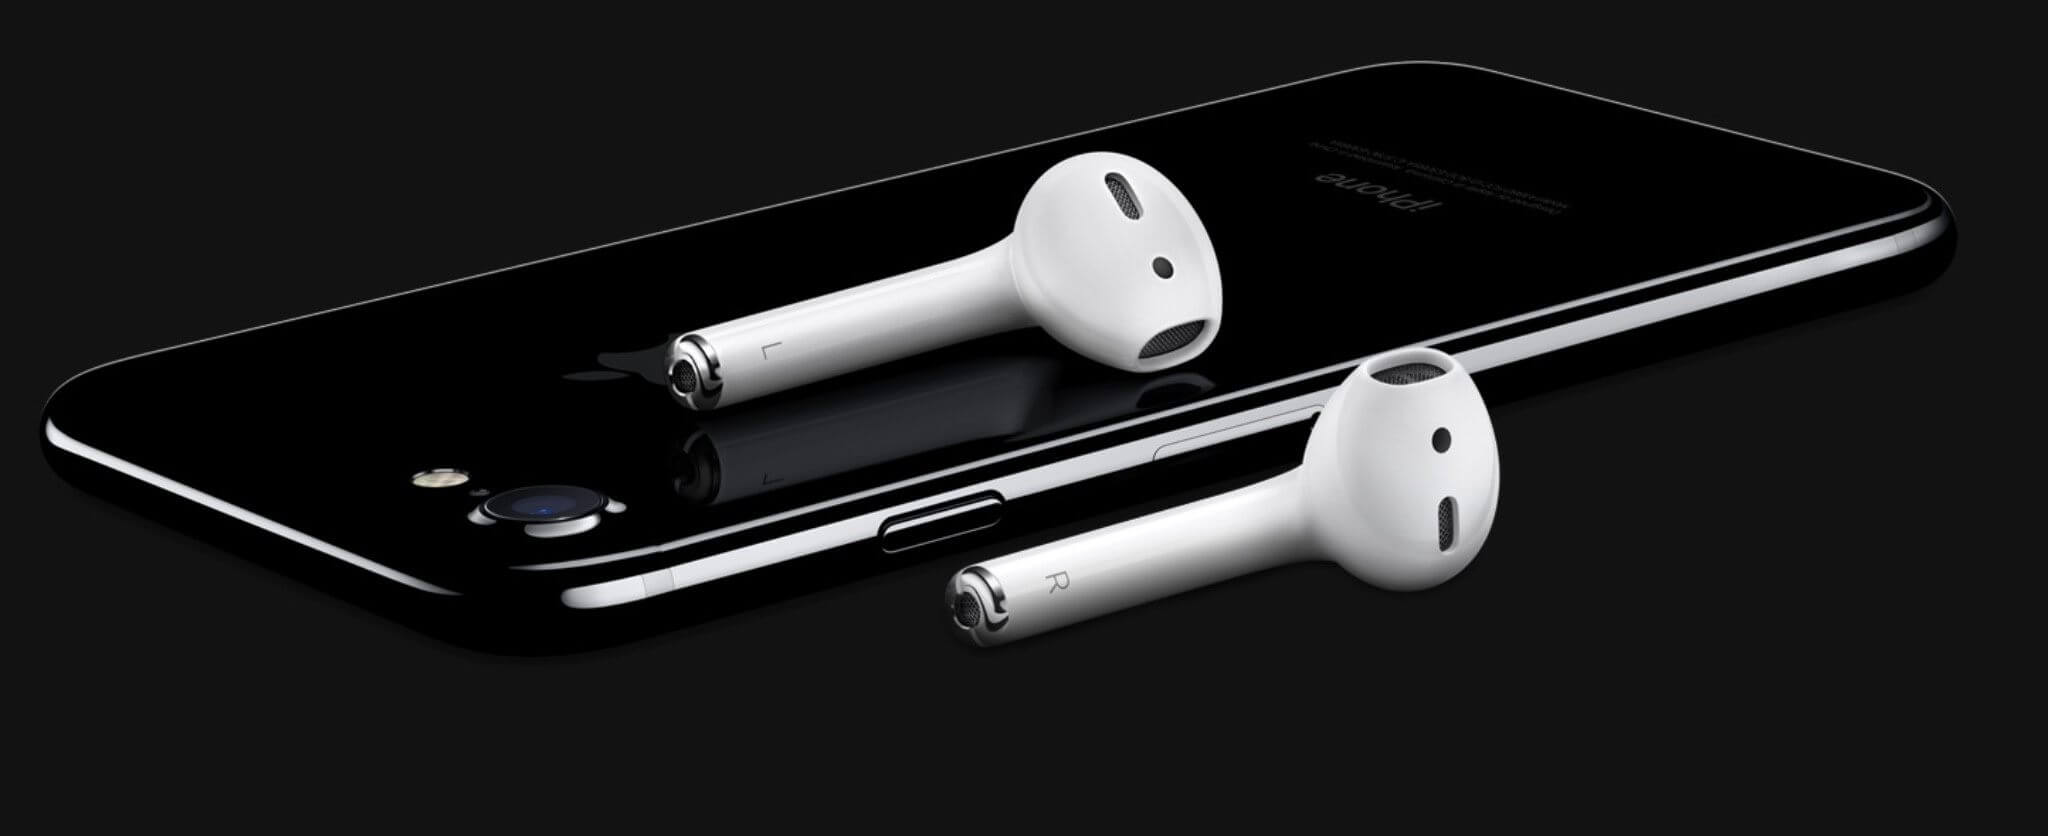 Apple Airpods (NASDA:AAPL)